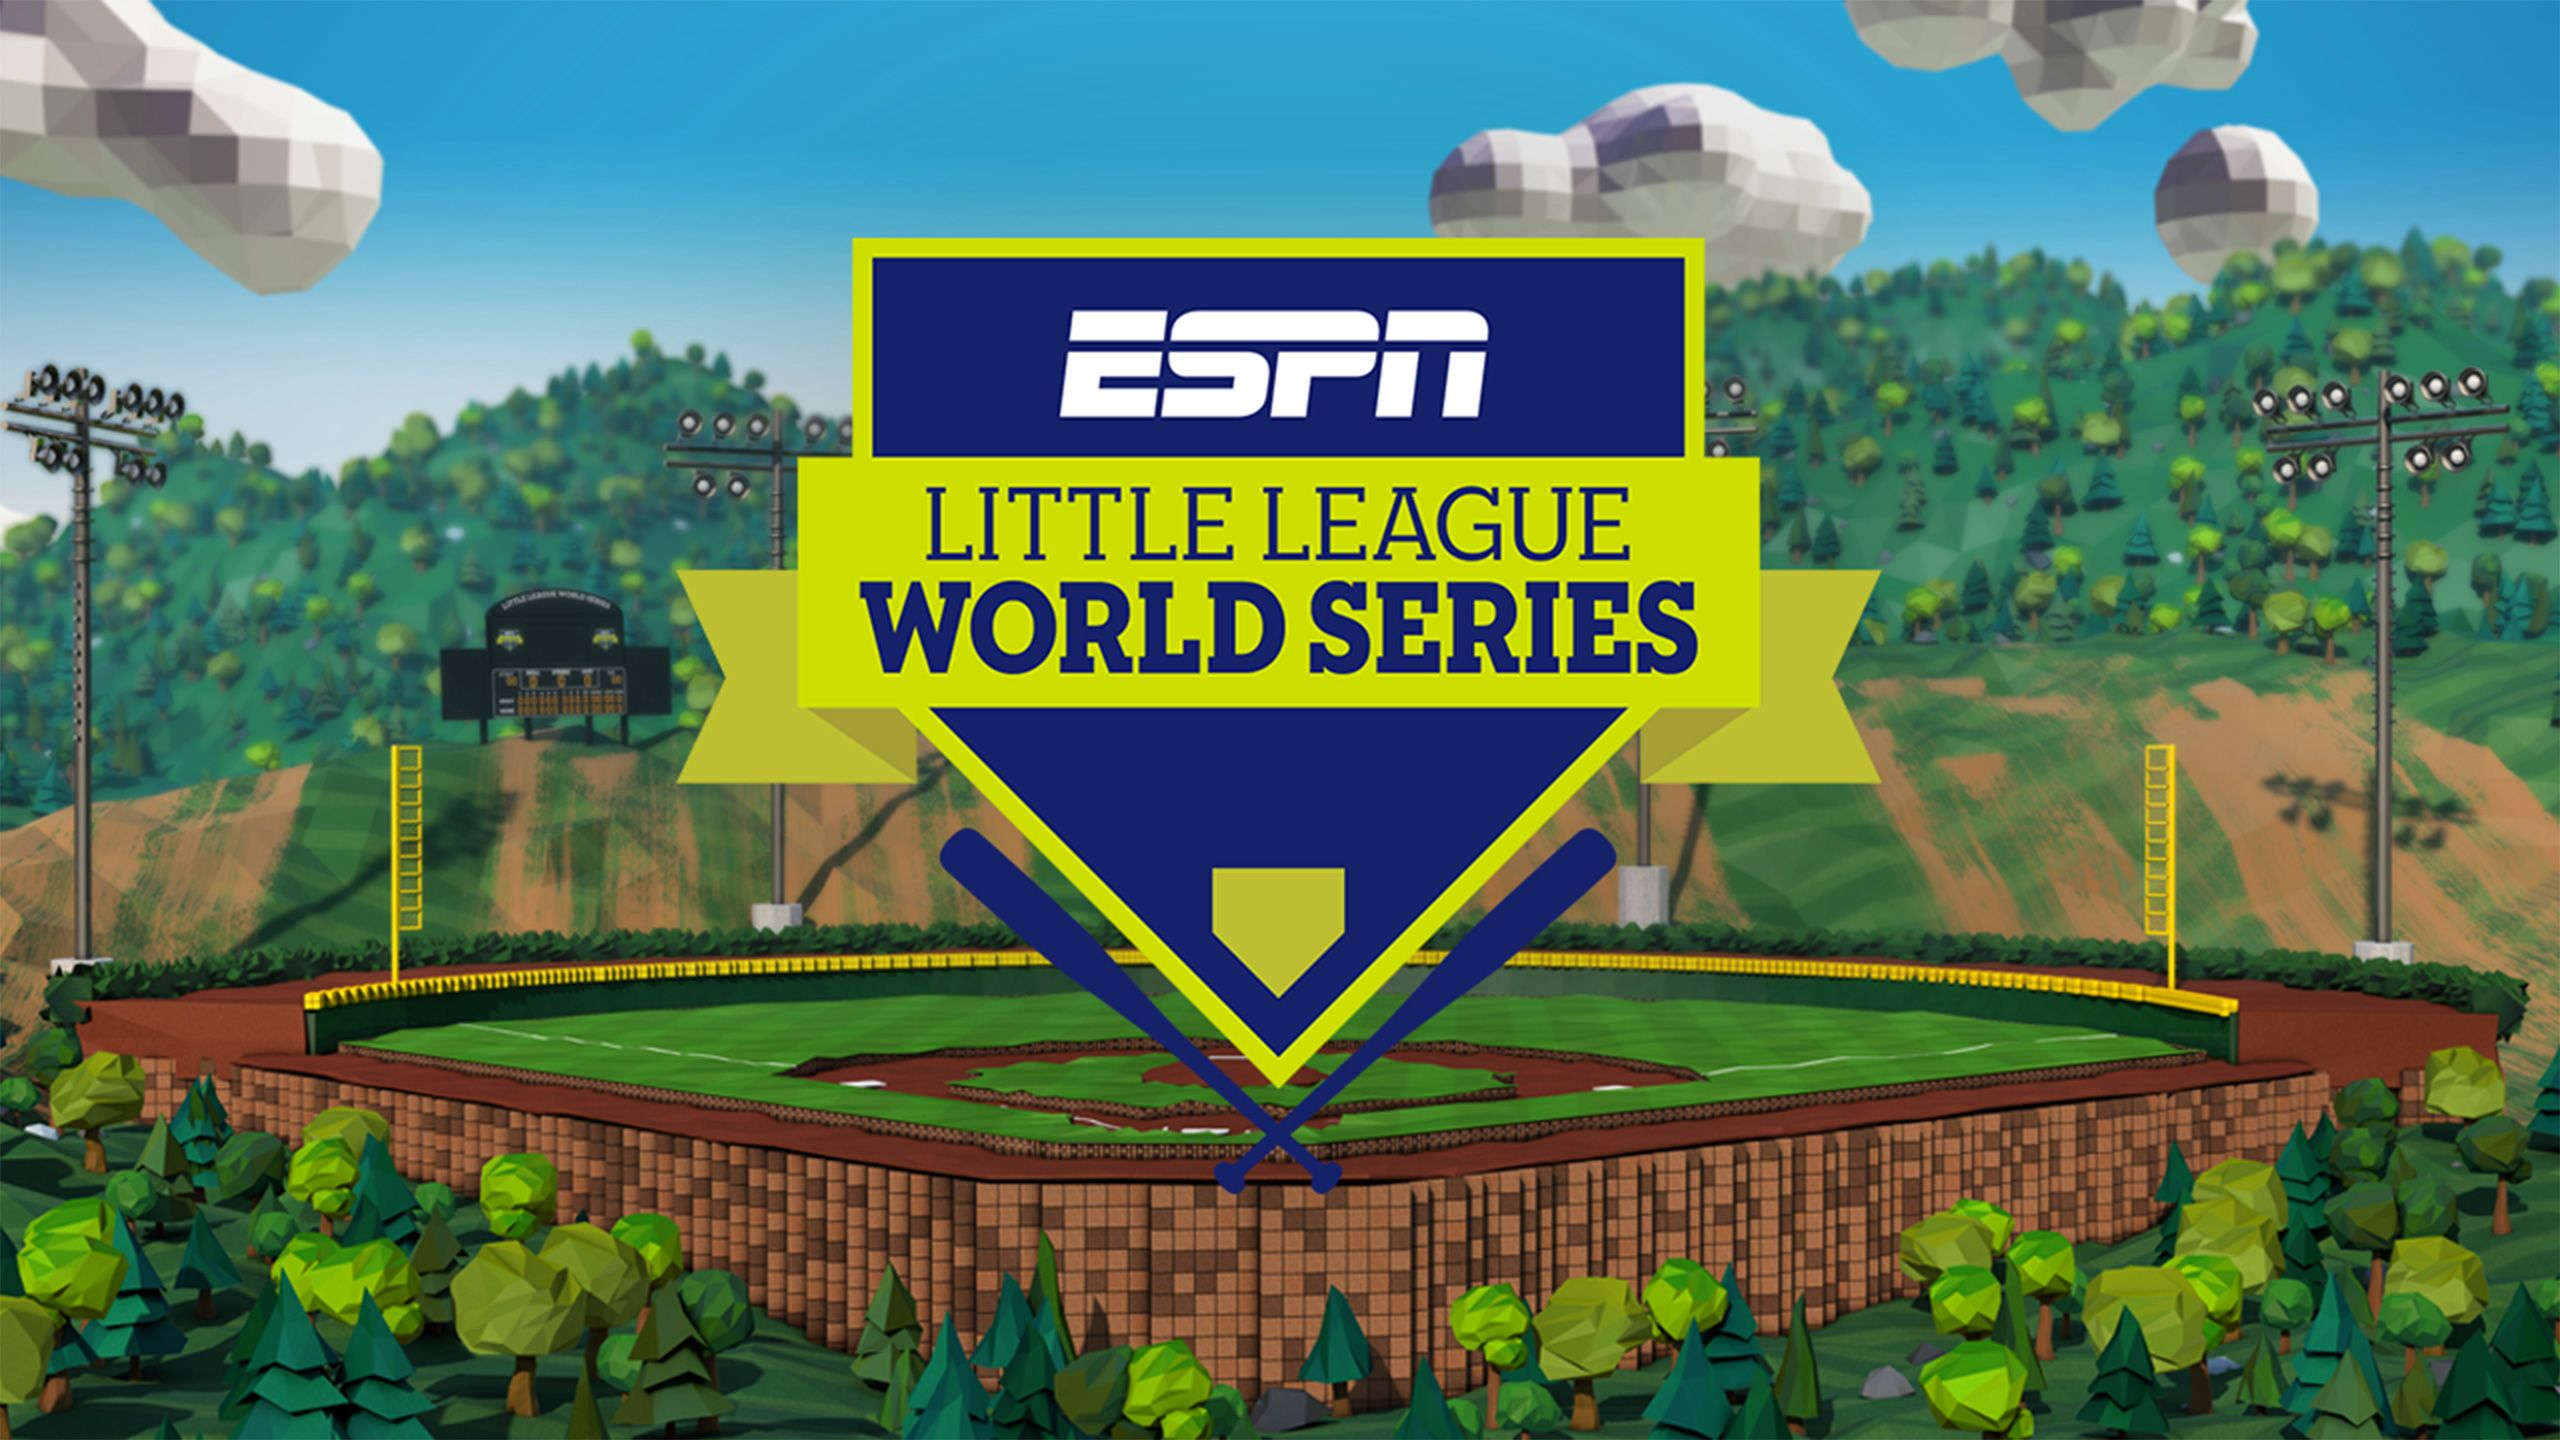 Little League World Series presented by Dick's Sporting Goods (Elimination Game) (Little League World Series)